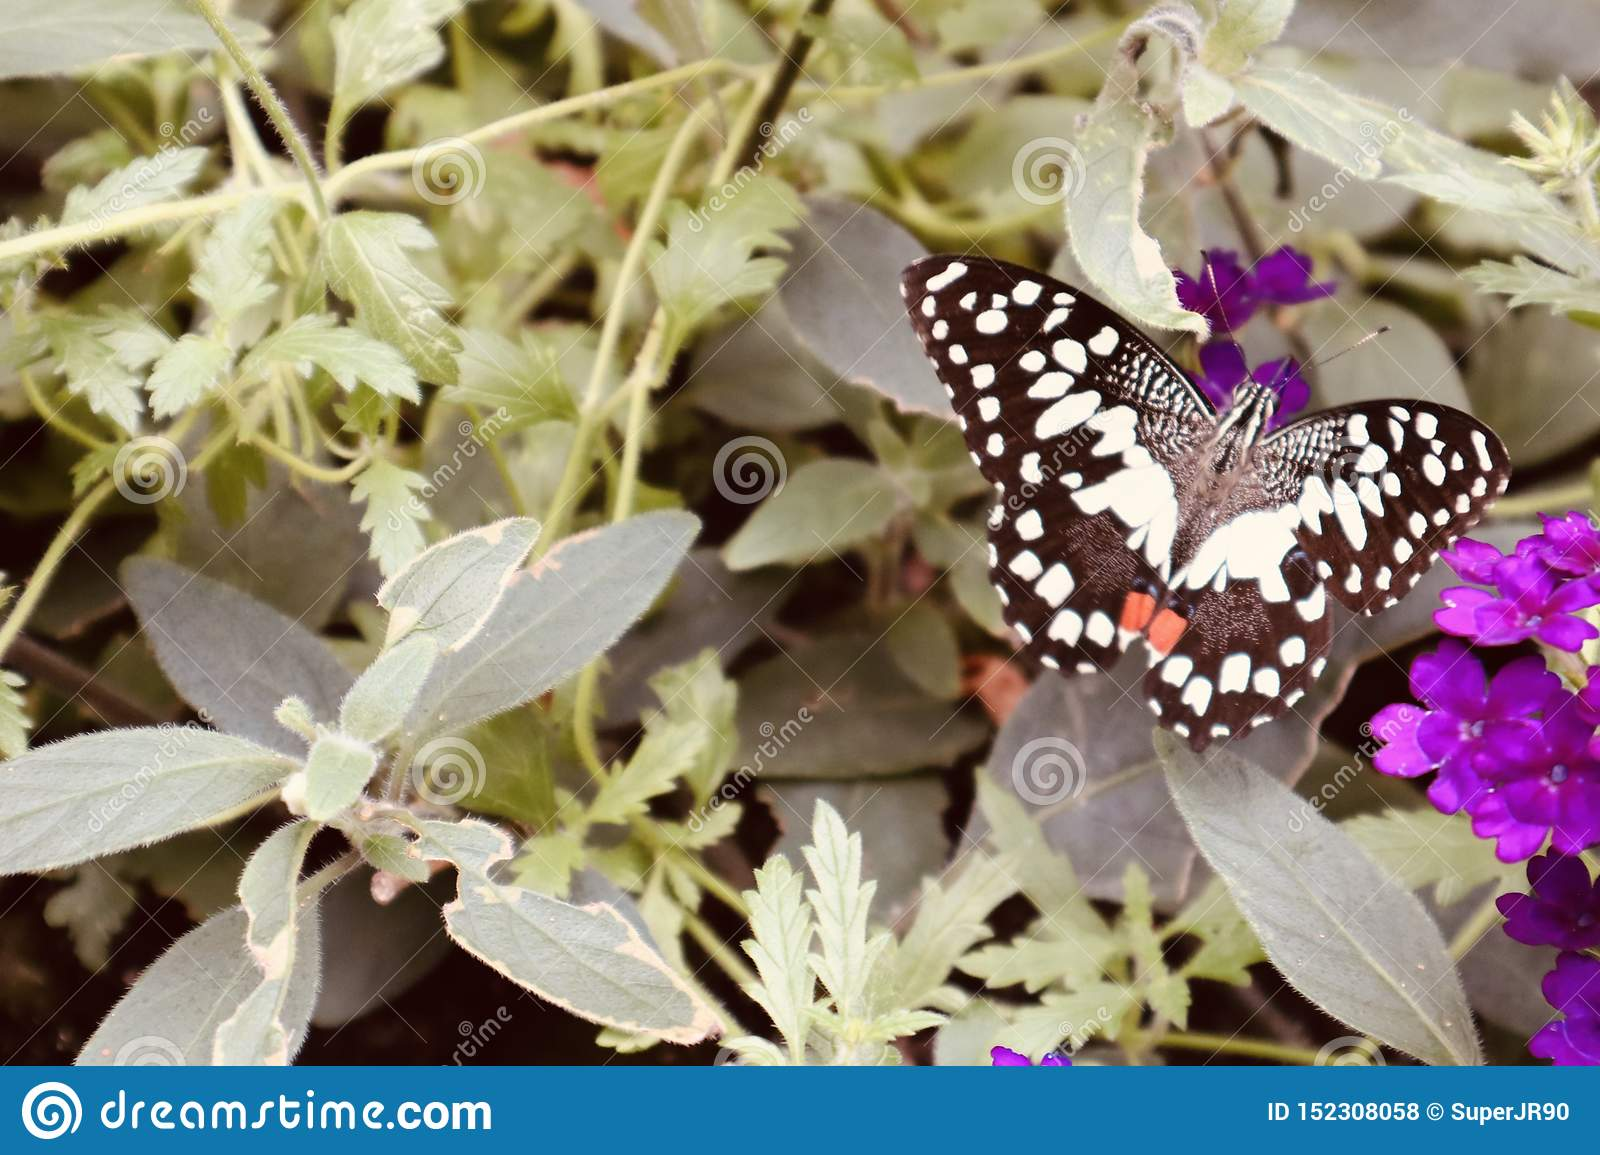 Butterfly on a plant and flower